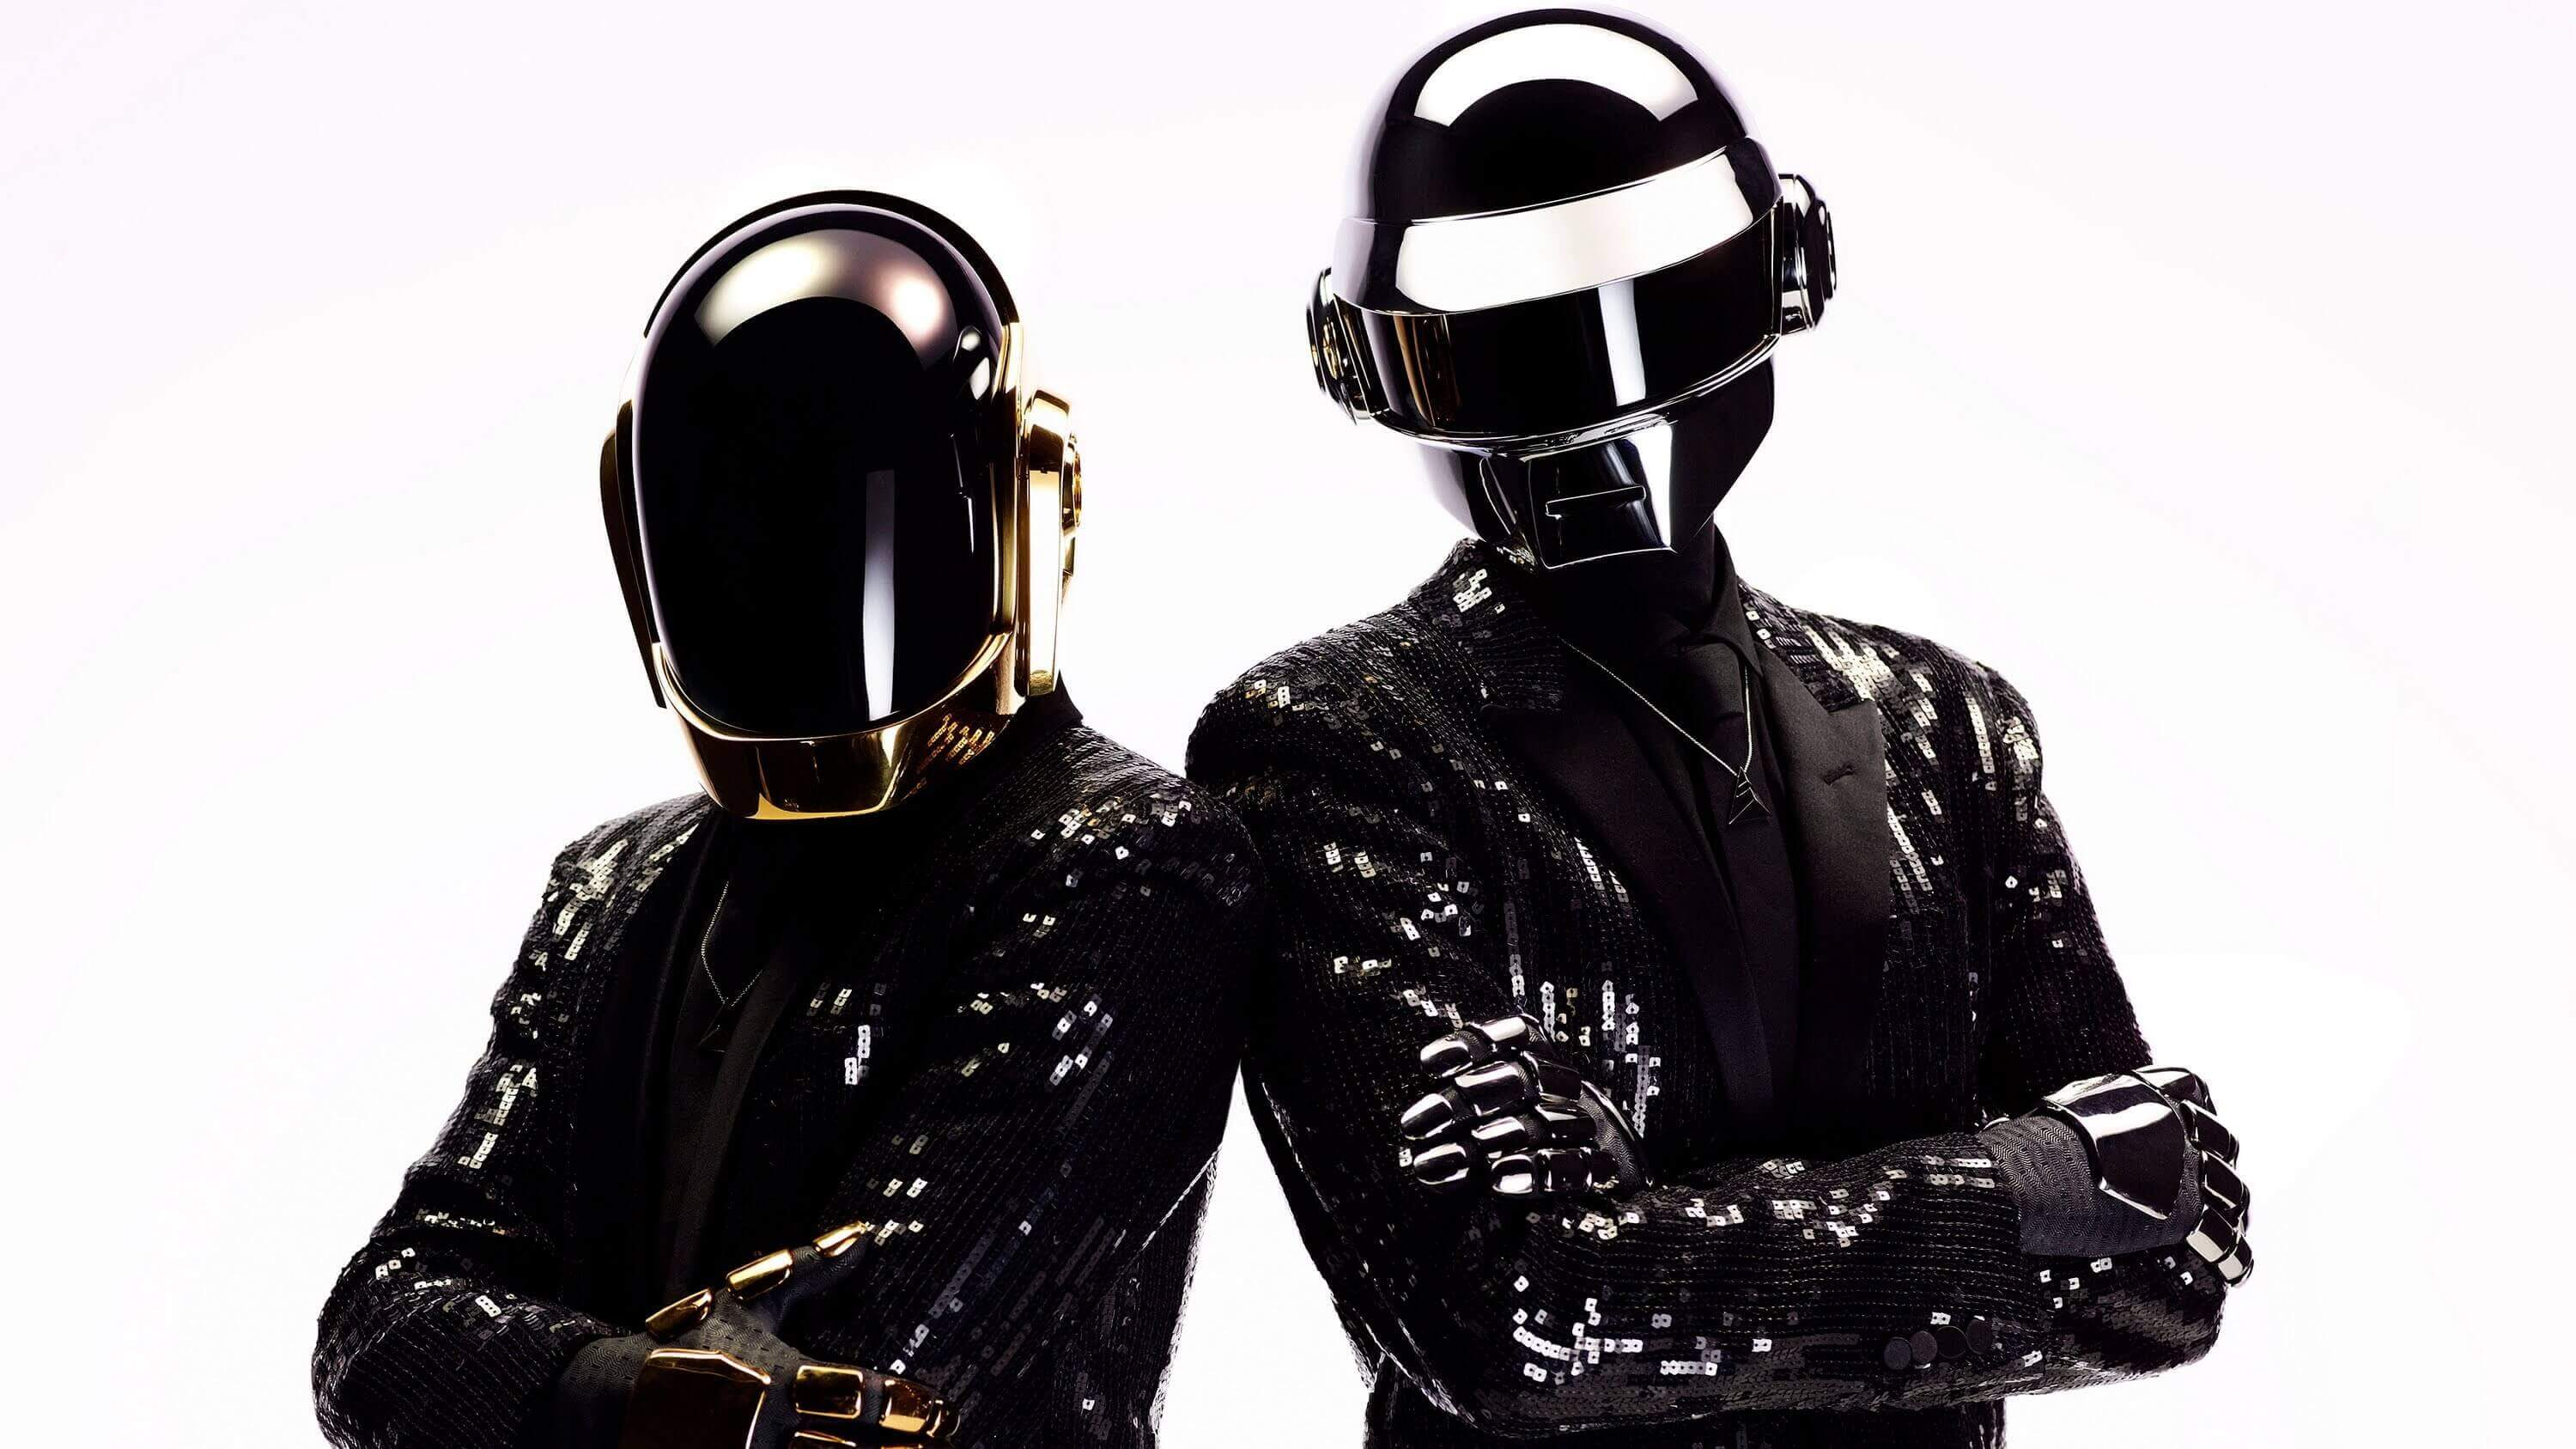 Thing of the Week: 3D Printable Daft Punk Helmet